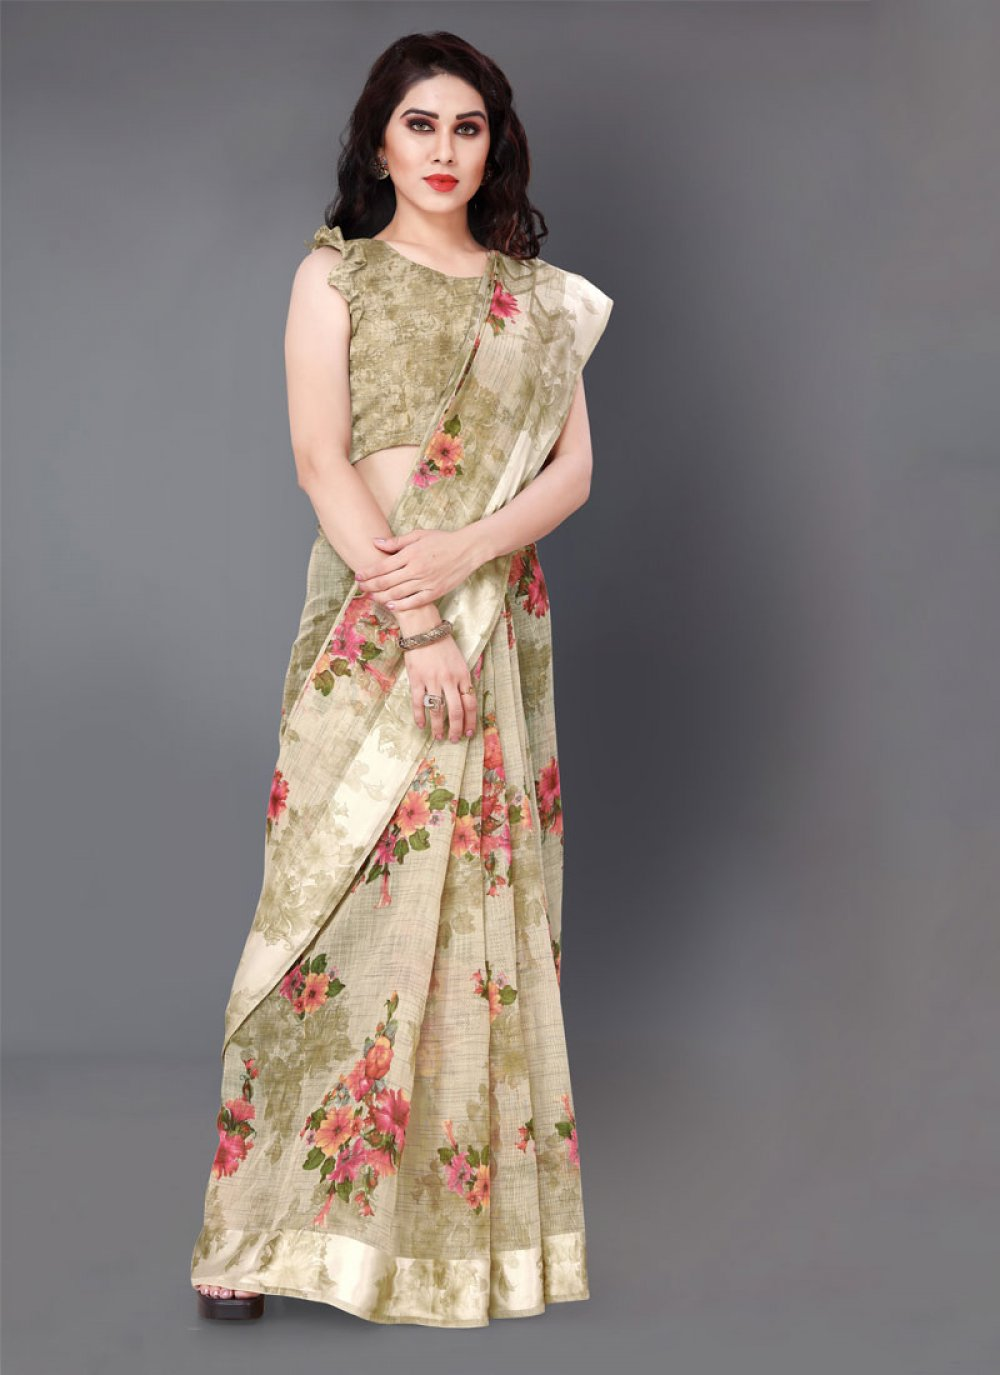 Floral Print Beige Casual Saree